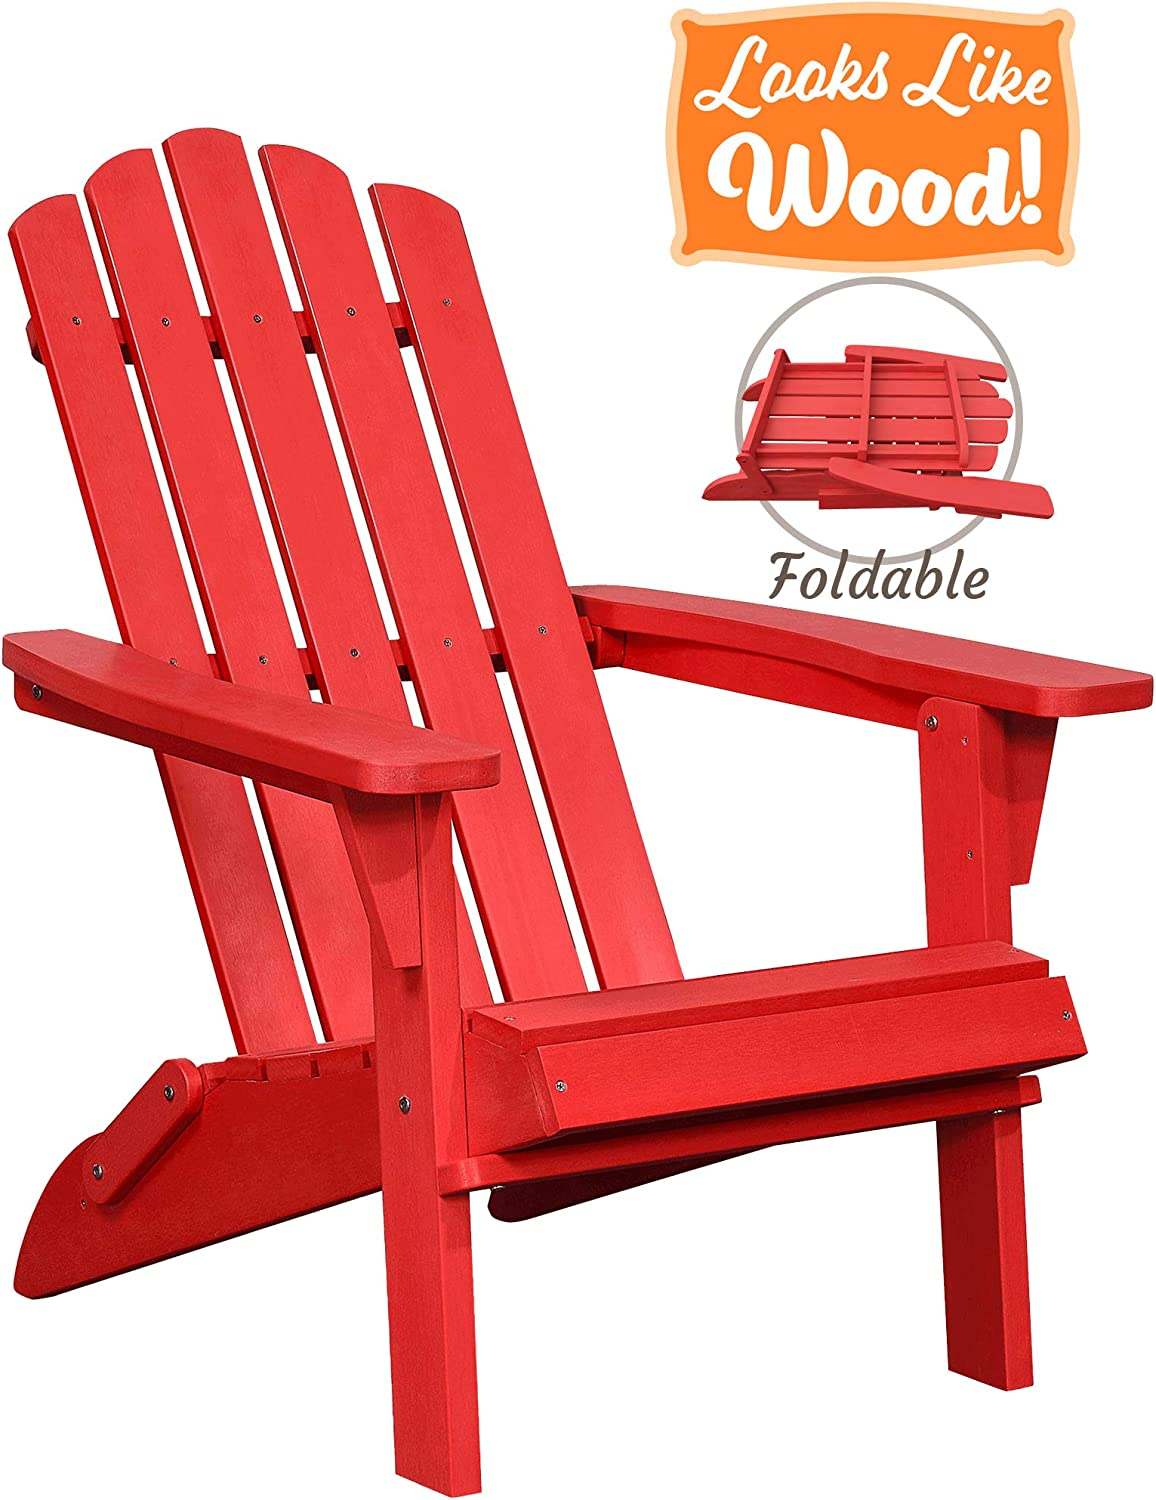 PolyTEAK Classic Folding Poly Adirondack Chair, Cardinal Red Adult-Size, Weather Resistant, Made from Plastic